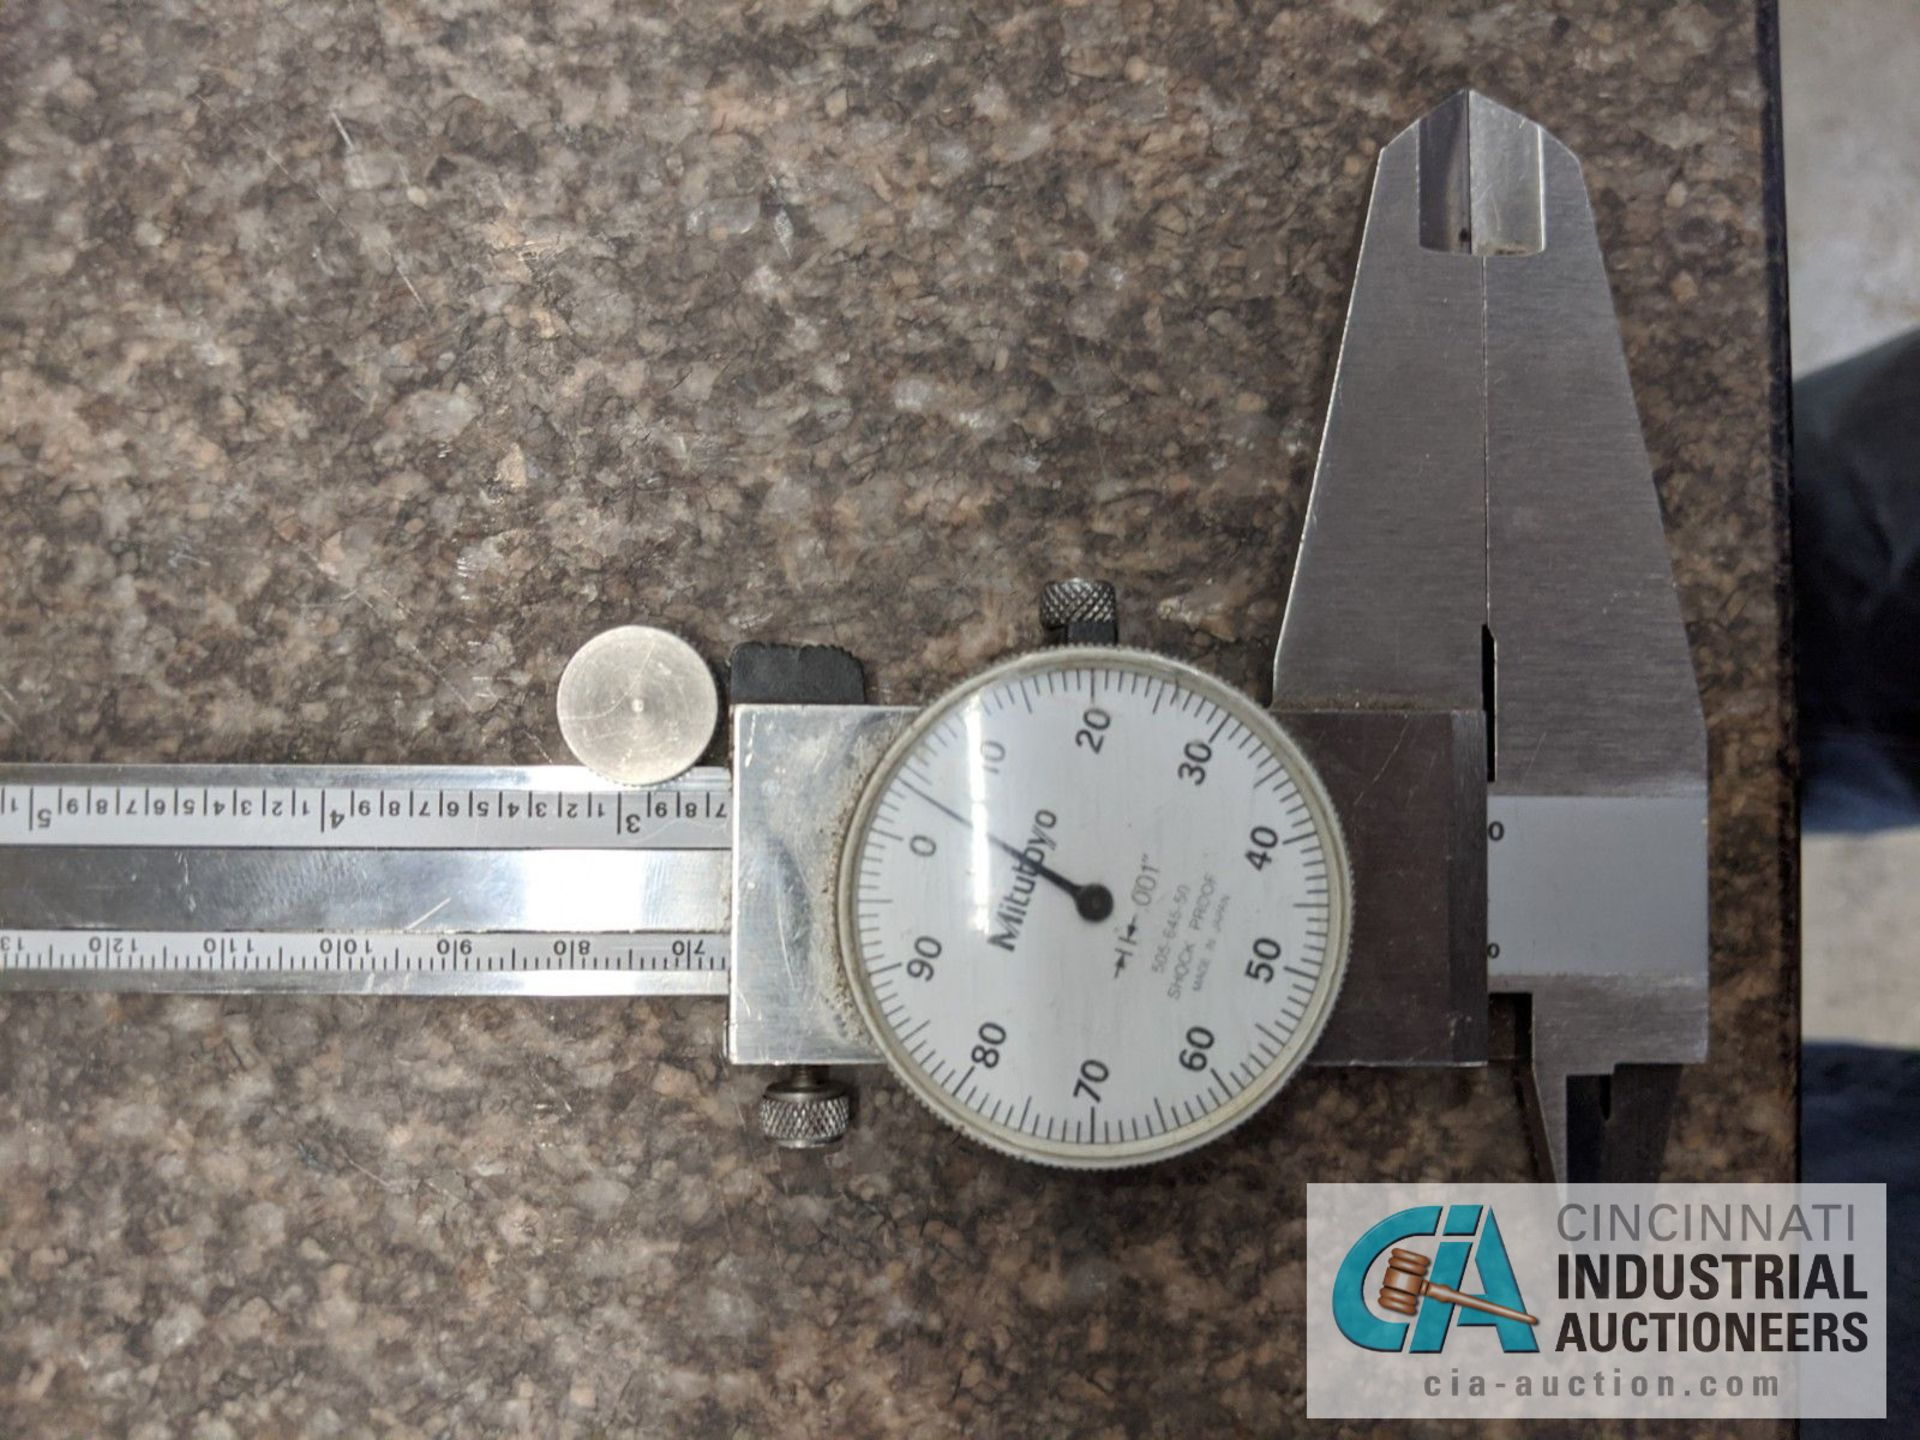 DIAL TYPE CALIPERS - Image 3 of 4